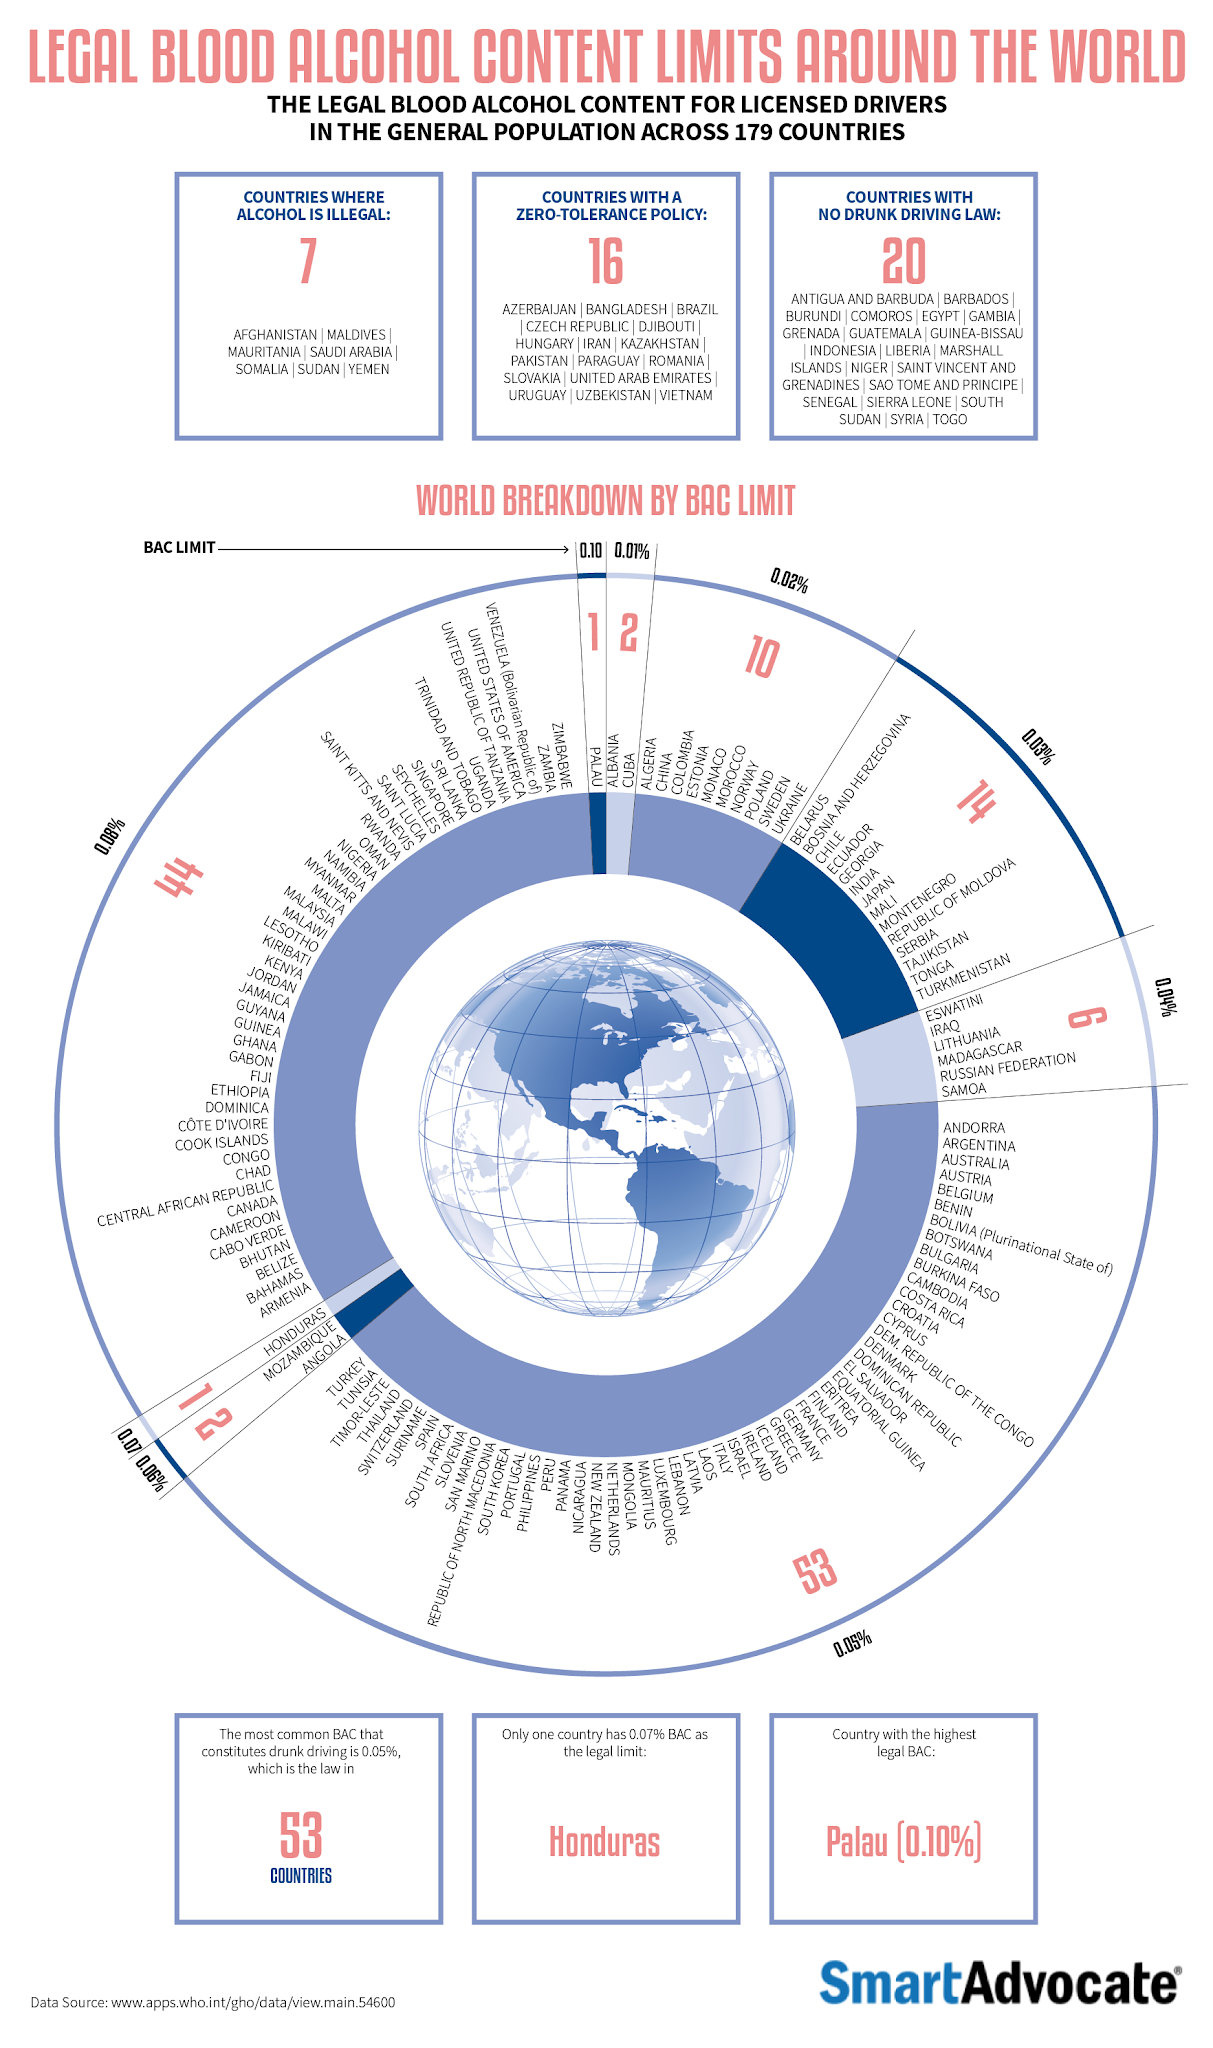 Legal Blood Alcohol Content Limits Around the World